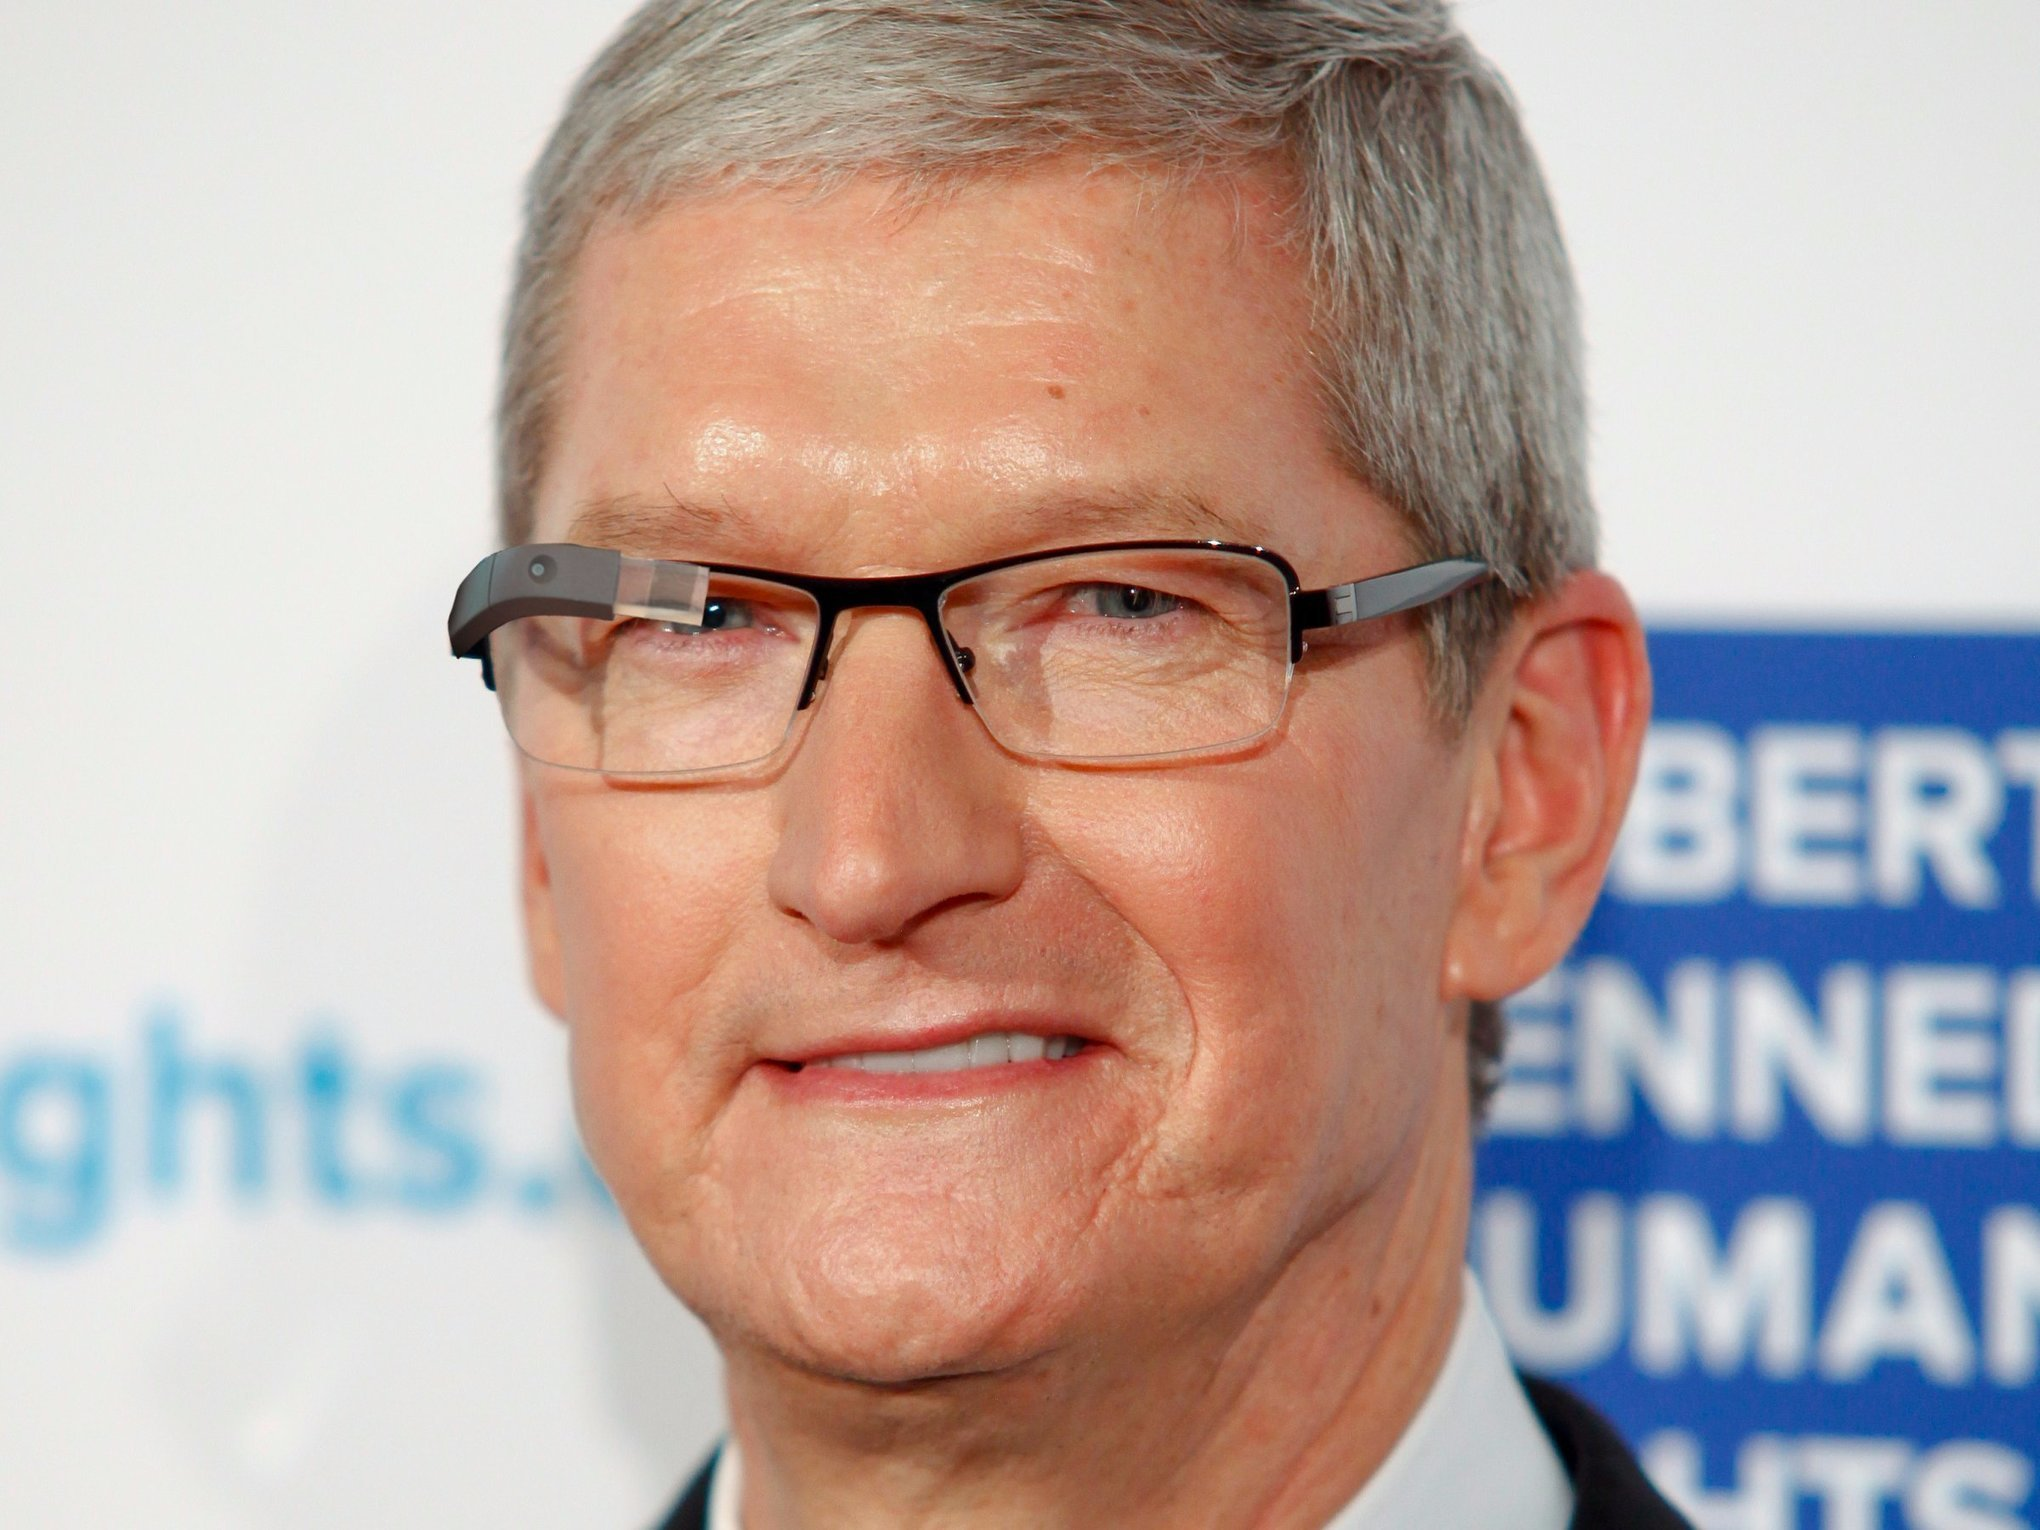 Apple CEO Tim Cook thinks augmented reality wil